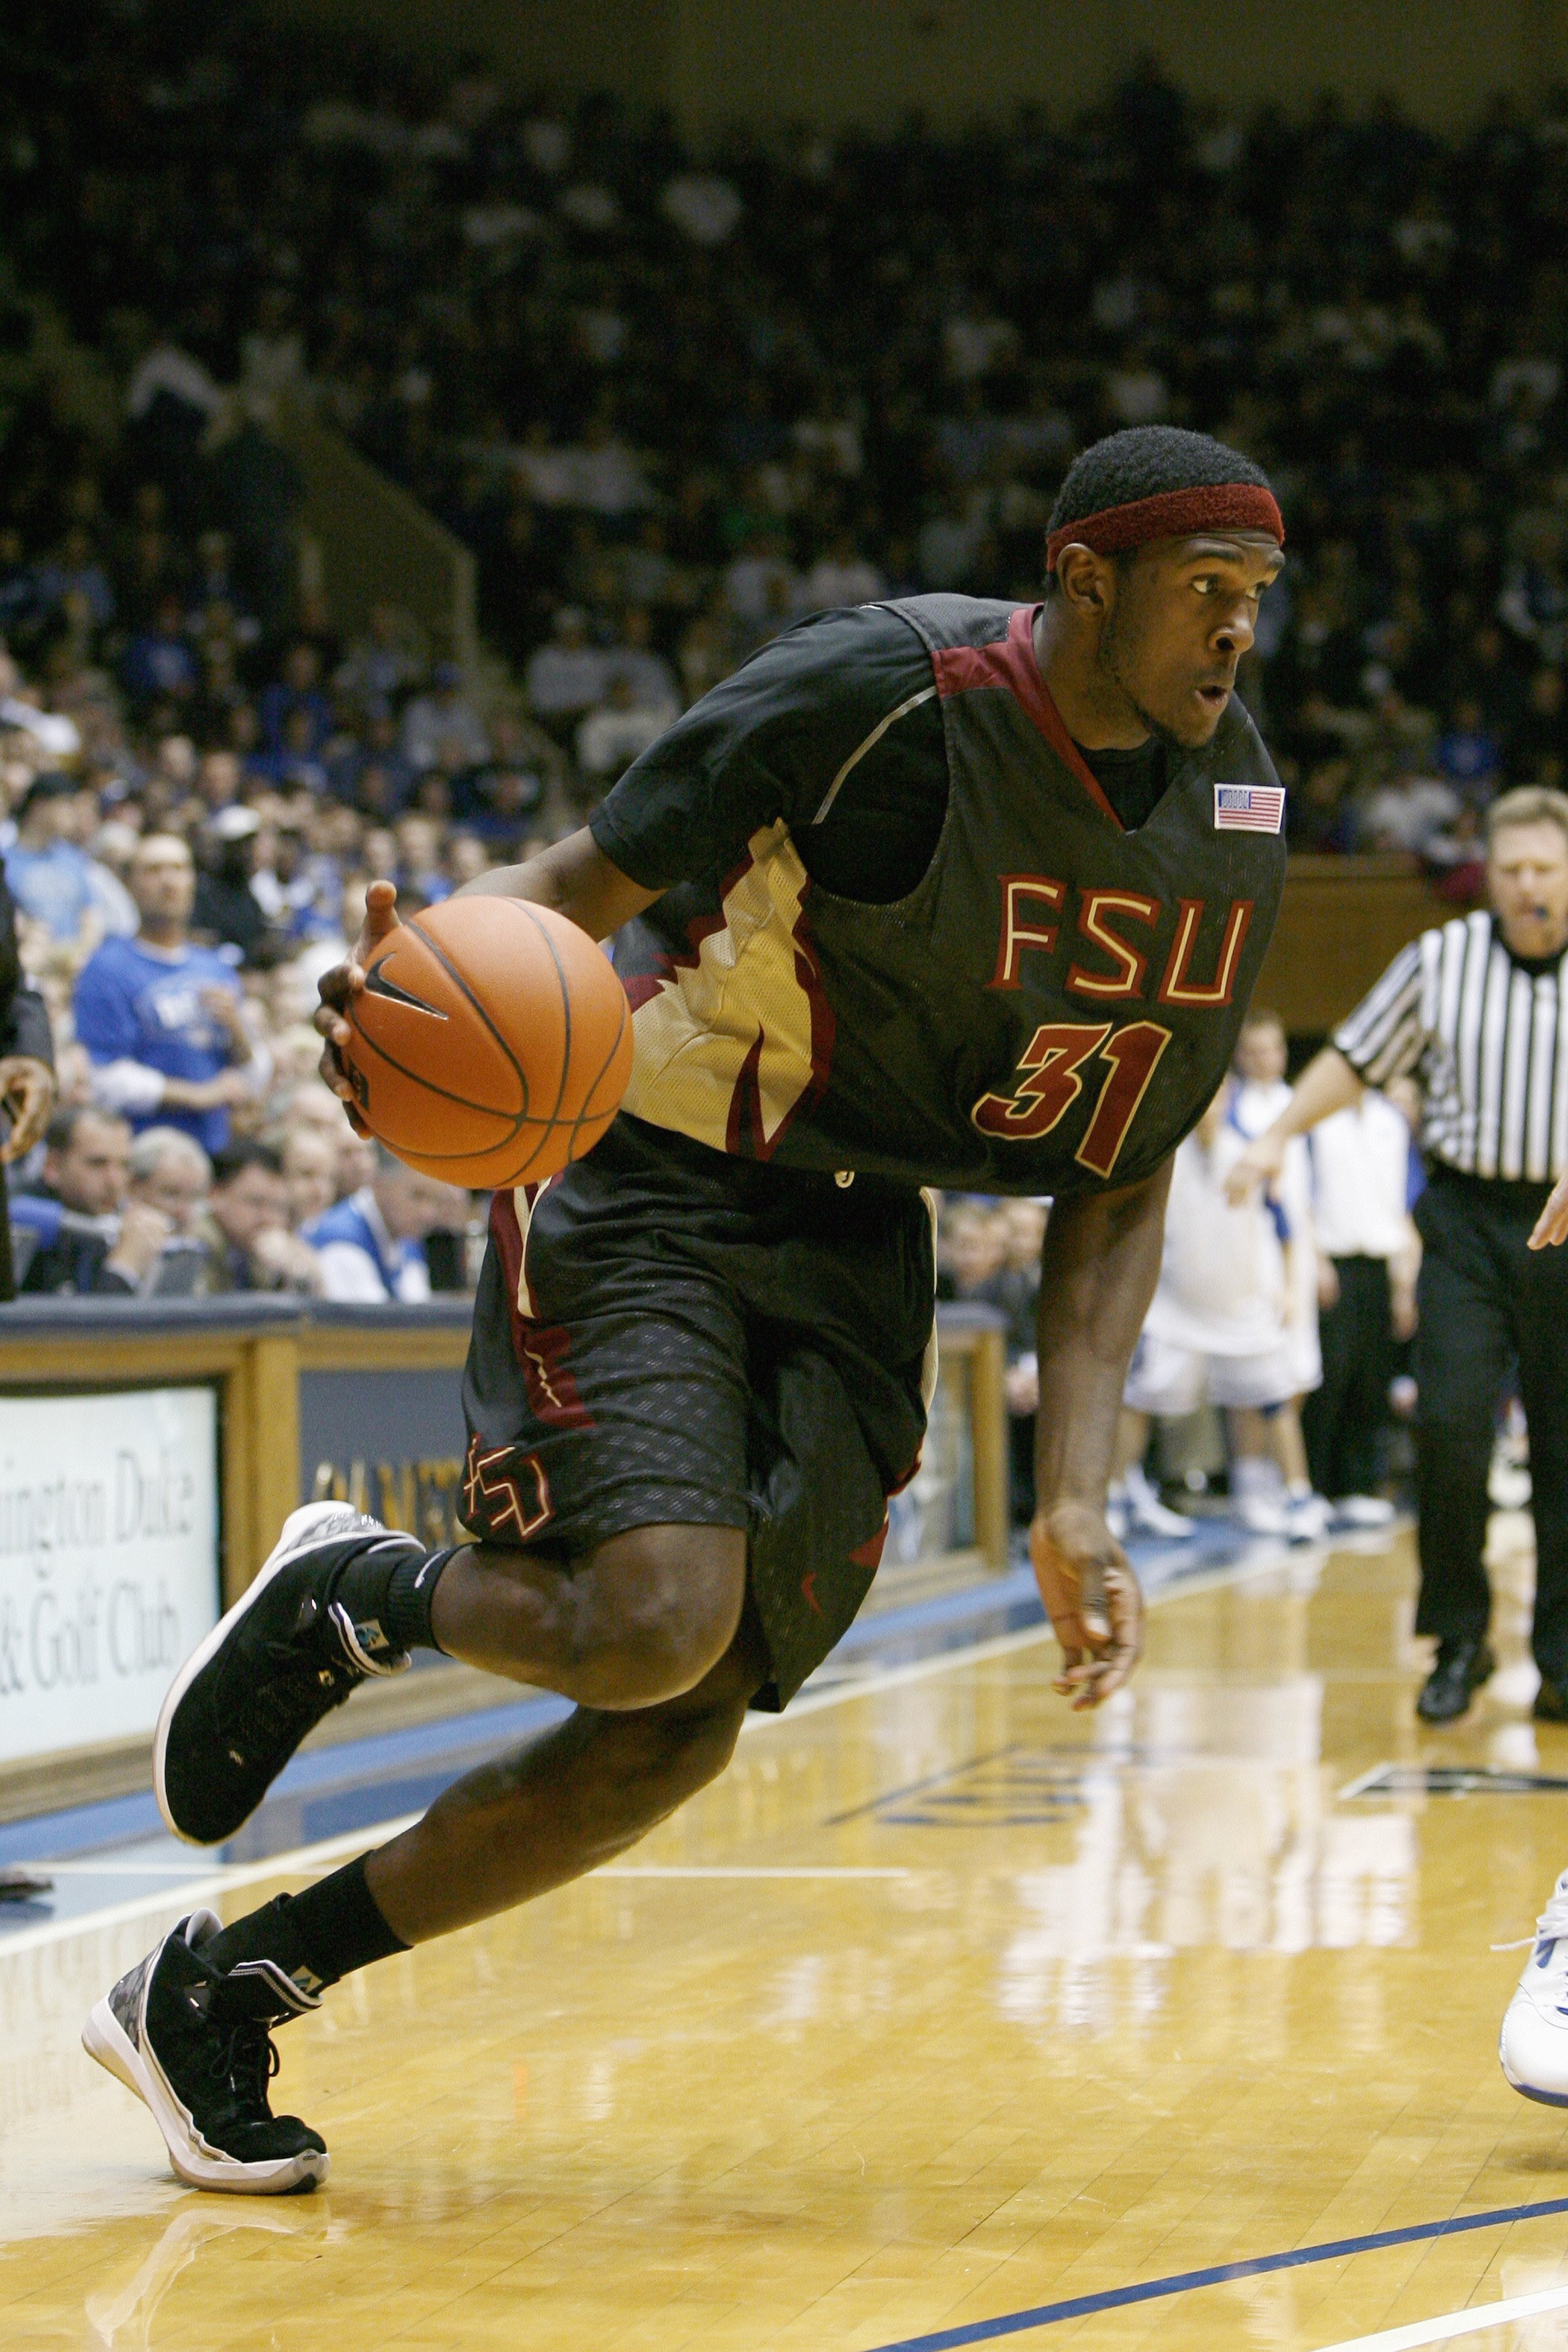 DURHAM, NC - MARCH 03: Chris Singleton #31 of the Florida State Seminoles dribbles the ball against the Duke Blue Devils during the game on March 3, 2009 at Cameron Indoor Stadium in Durham, North Carolina.  (Photo by Kevin C. Cox/Getty Images)